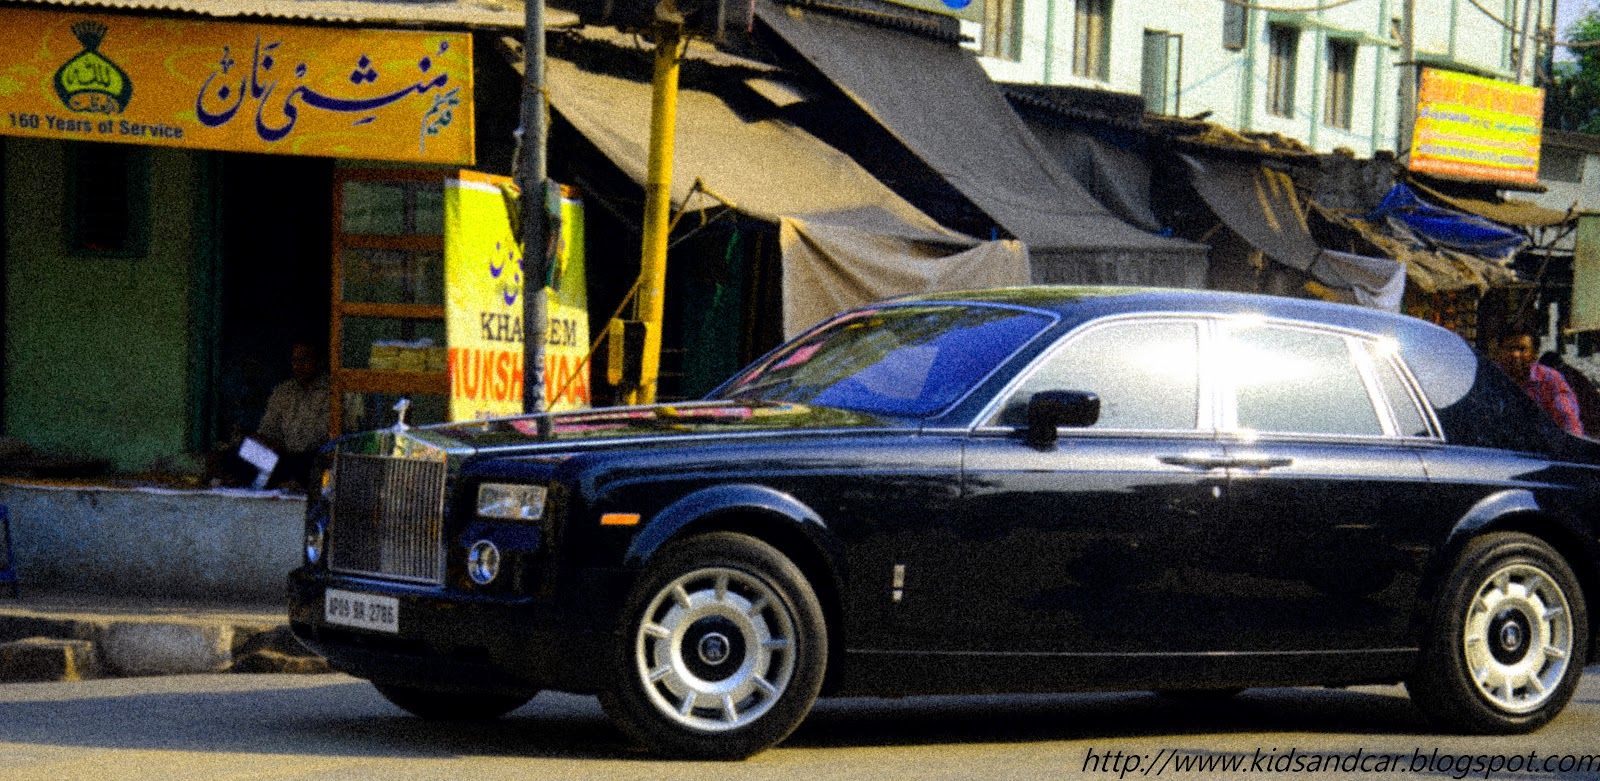 A Black Rolls Royce in Old City of Hyderabad